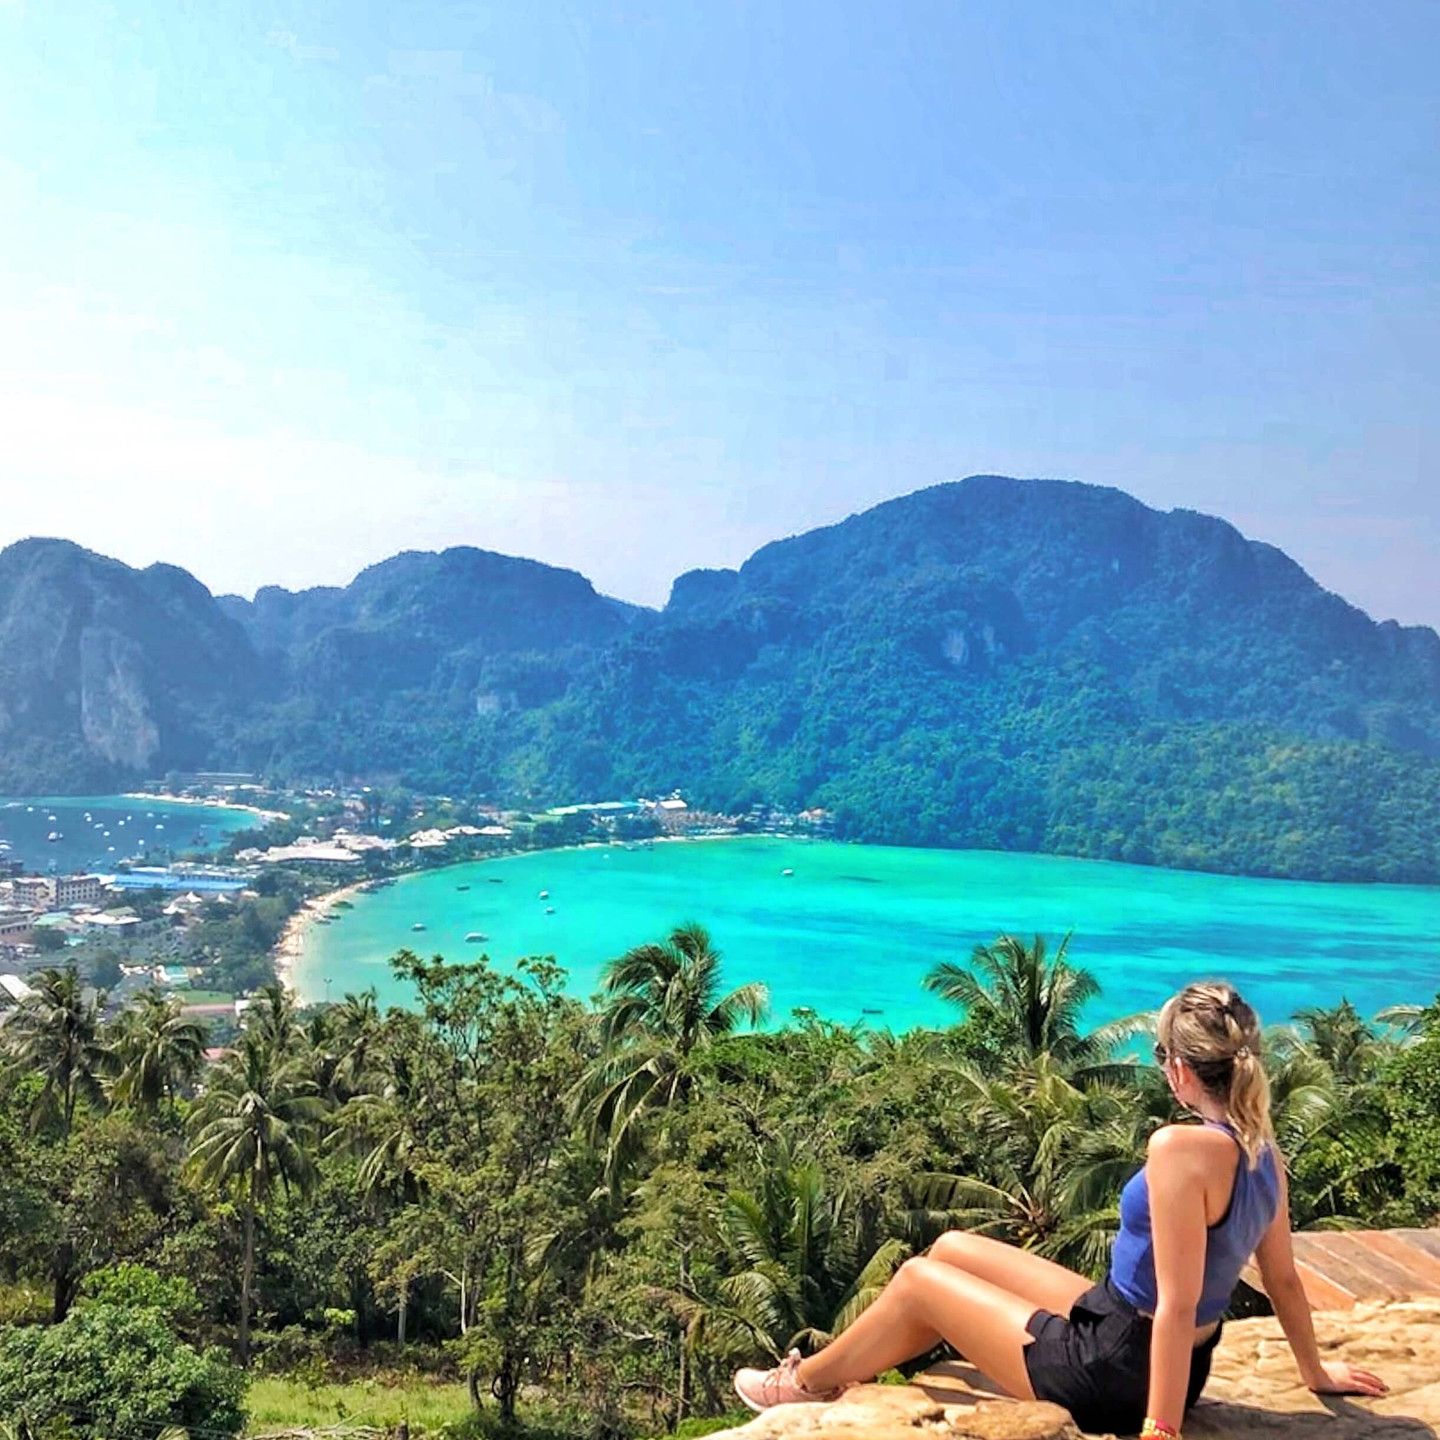 Girl sitting on a rock with view of tropical island